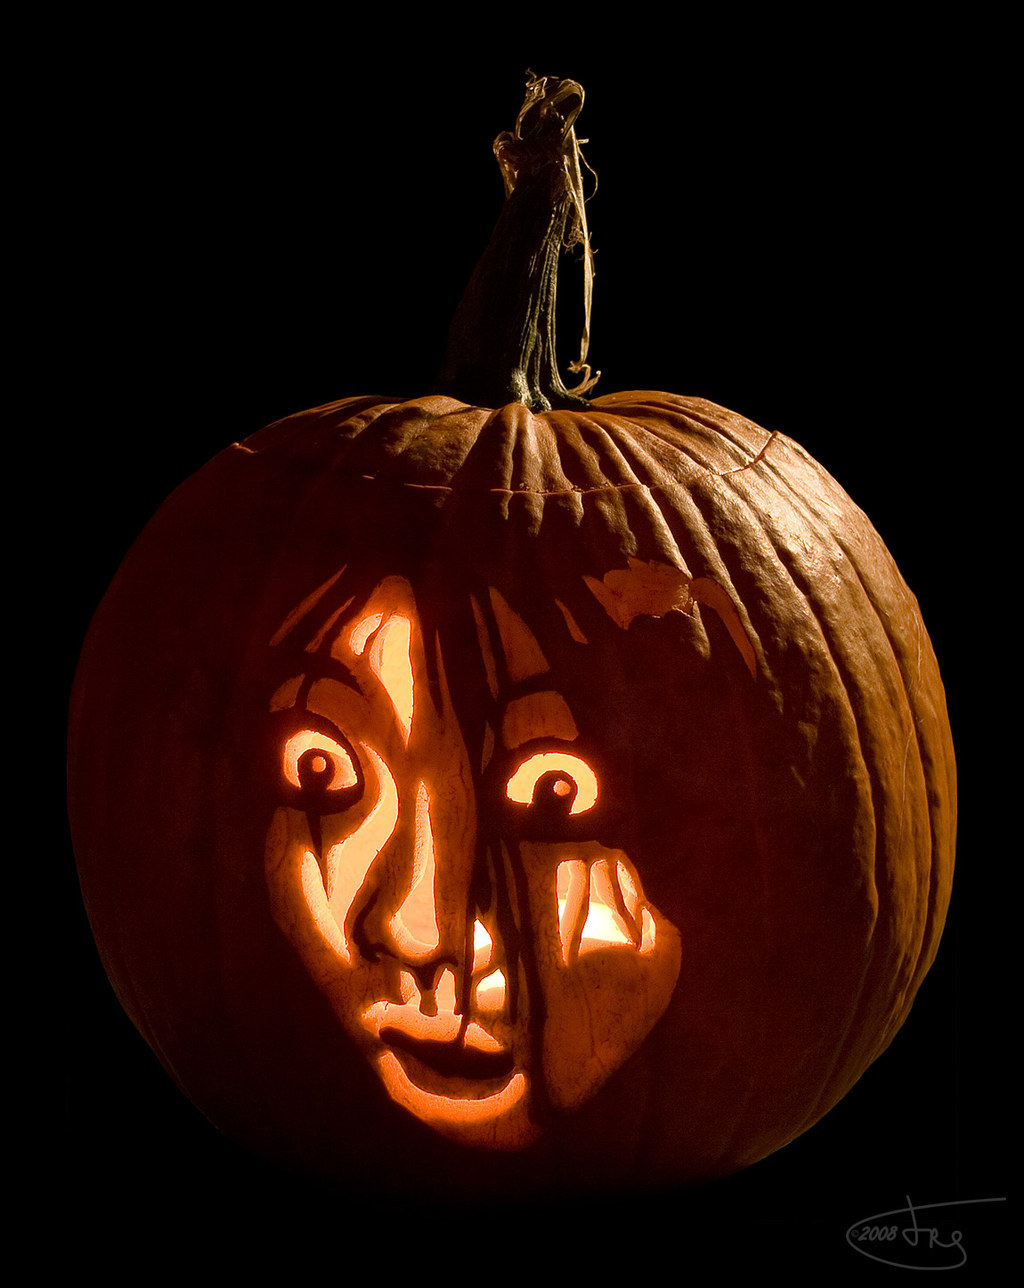 Jack-o-lantern : jack-o-lantern, Jack-O'-Lanterns, Don't, Deserve, After, Halloween